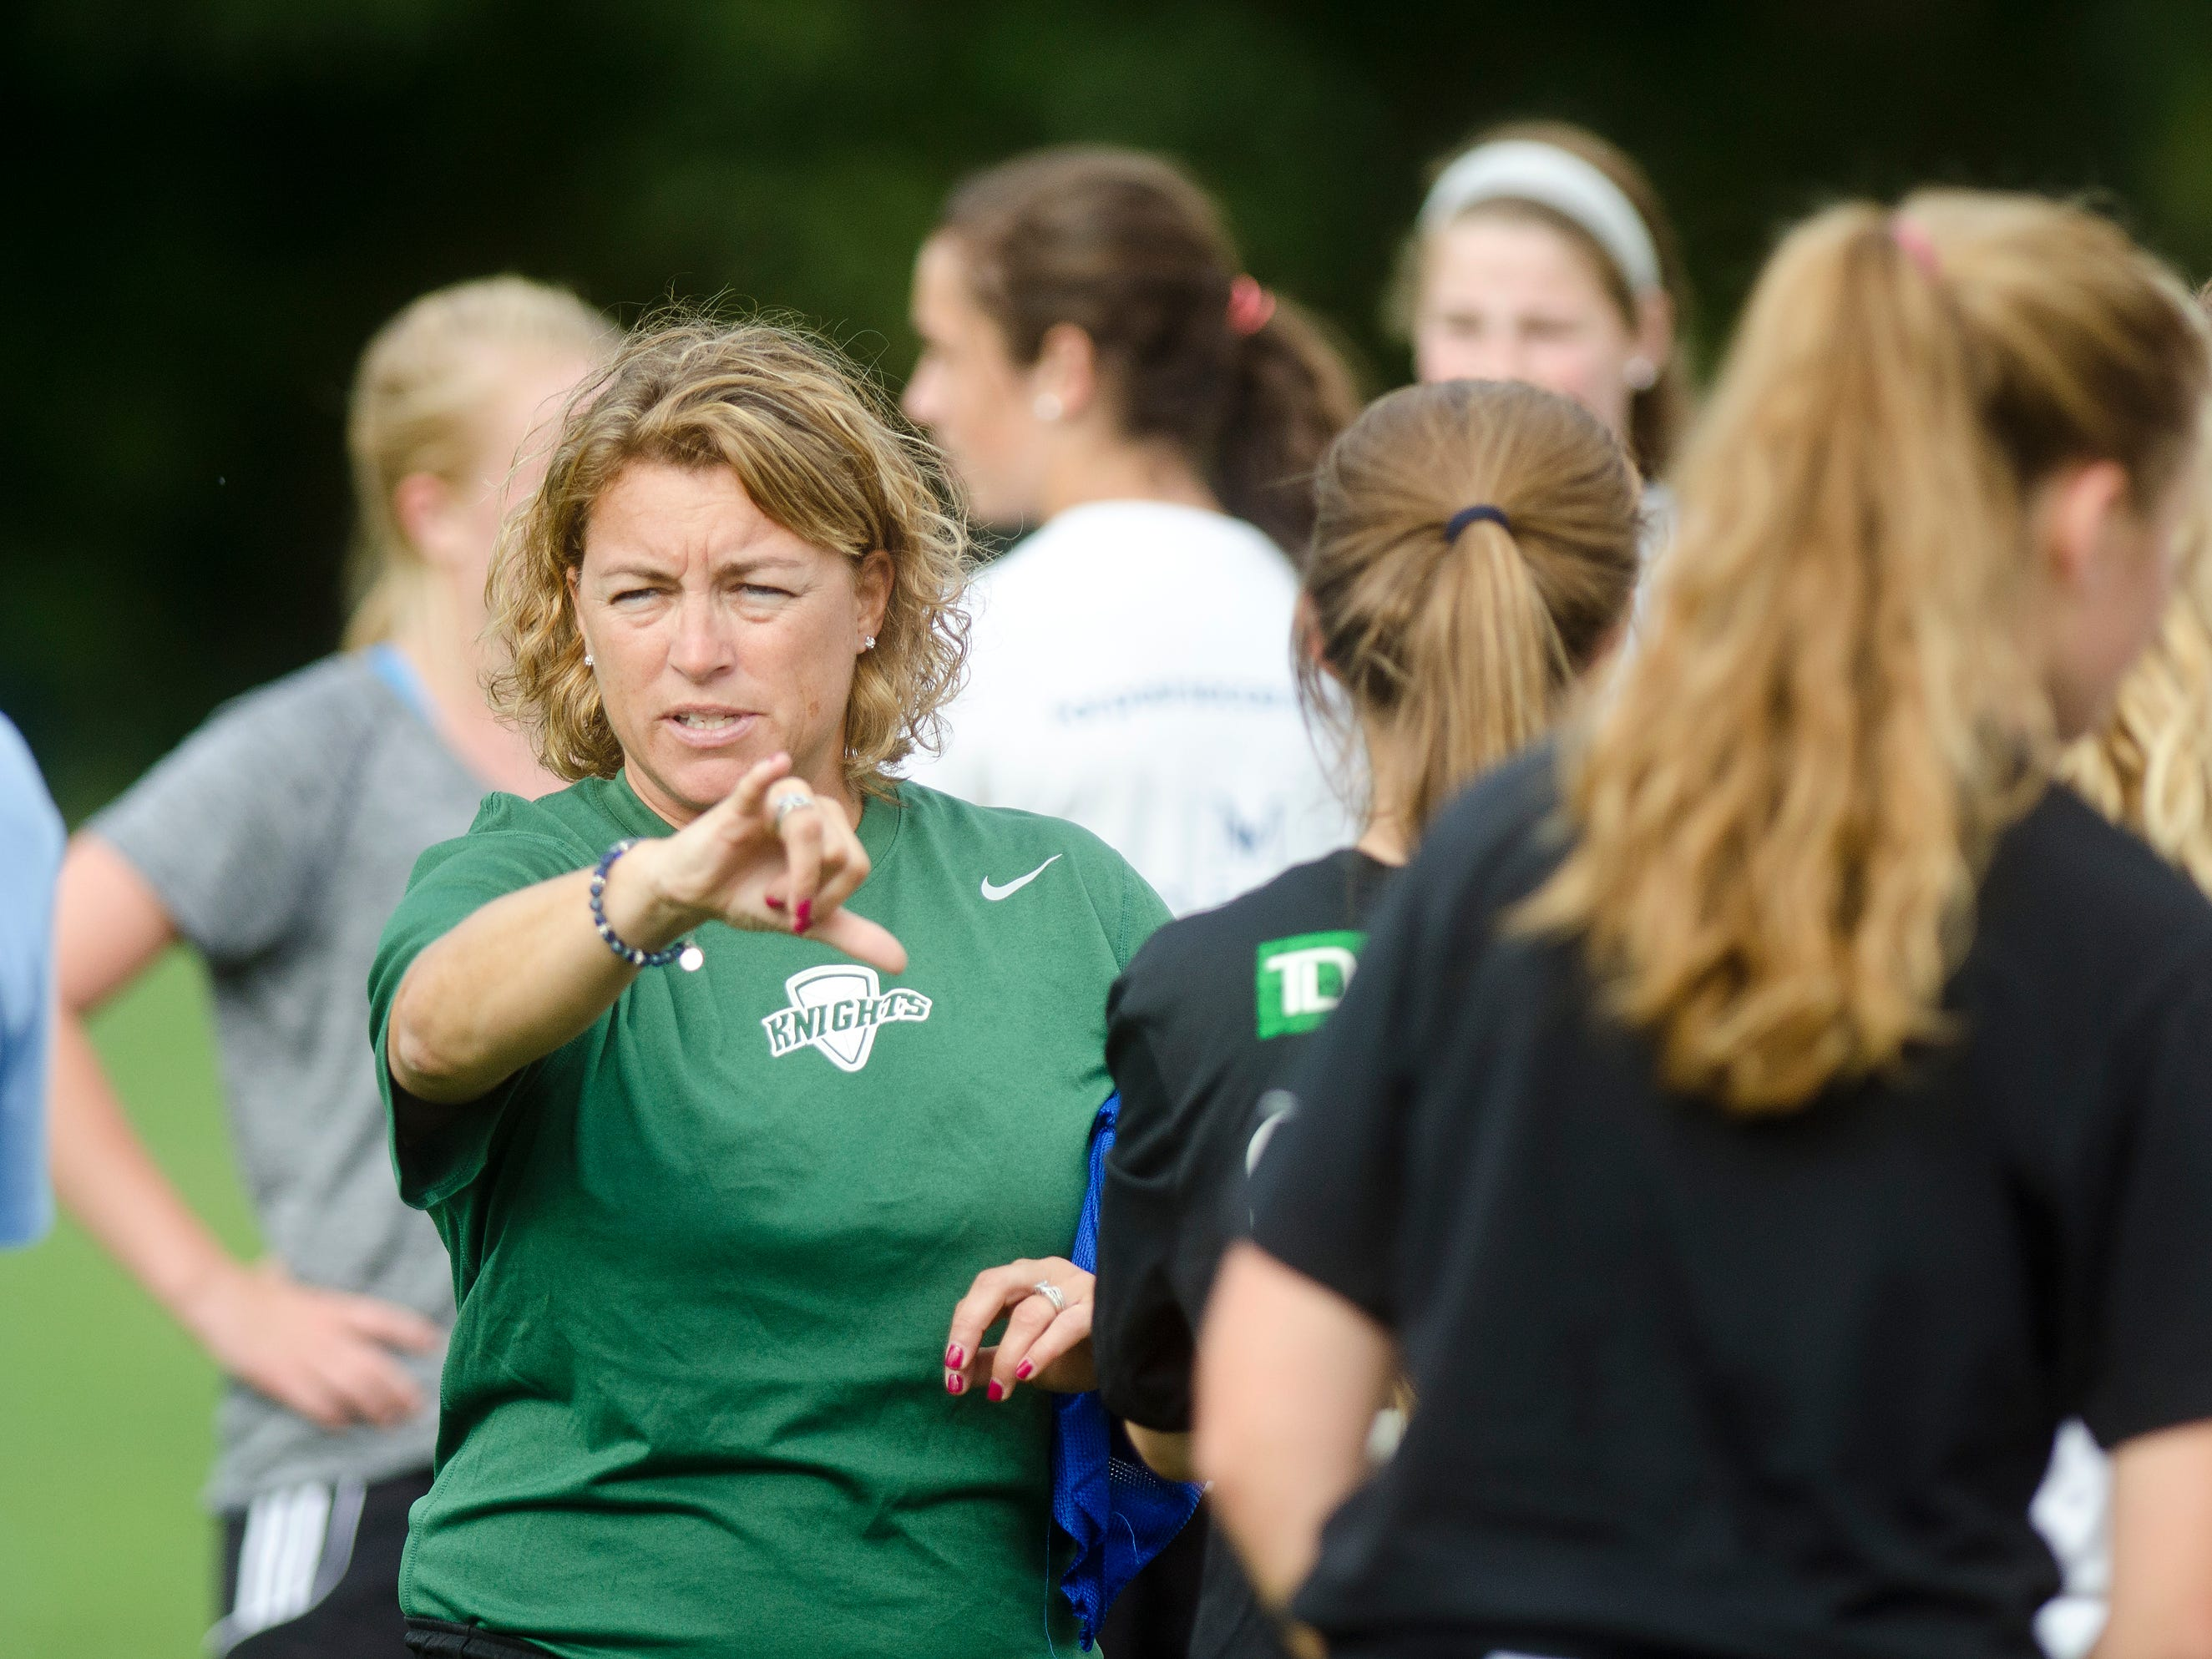 Rice Memorial High School girls soccer coach Shawntel Burke directs practice on the opening day of preseason on Thursday in South Burlington.